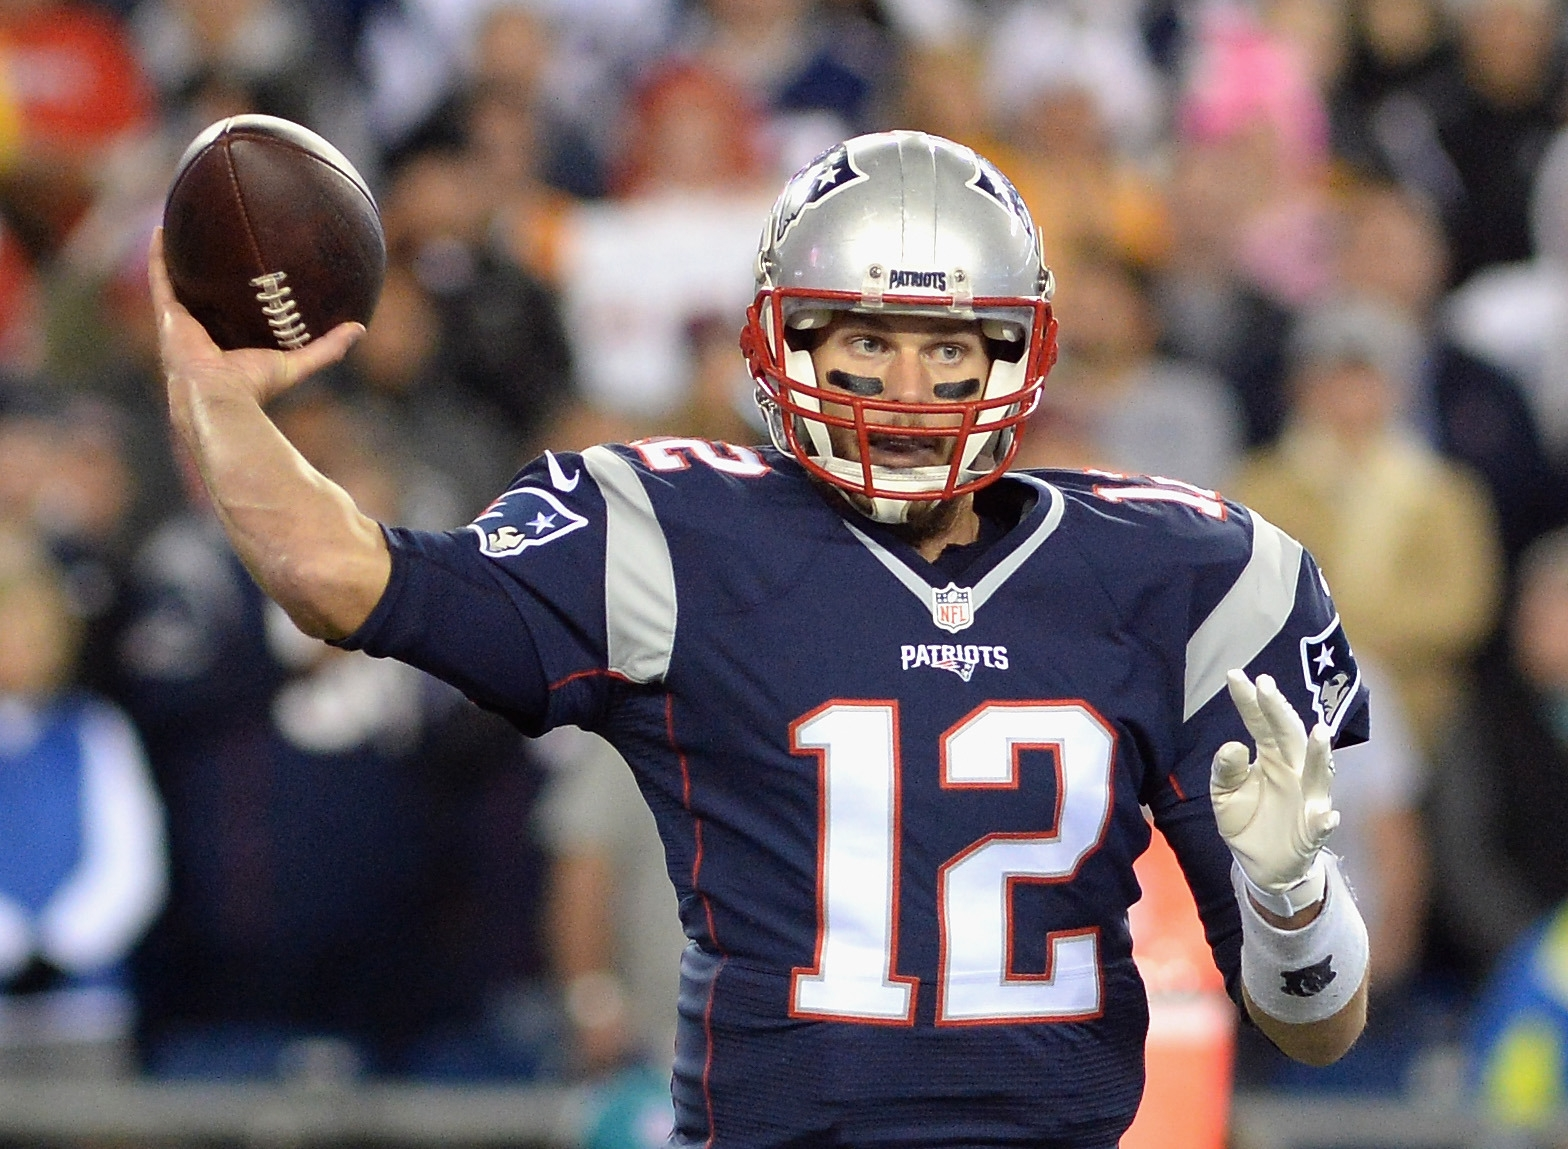 Tom Brady shows no sign of slowing down at 38, and he could play well into his 40s. (Getty Images)